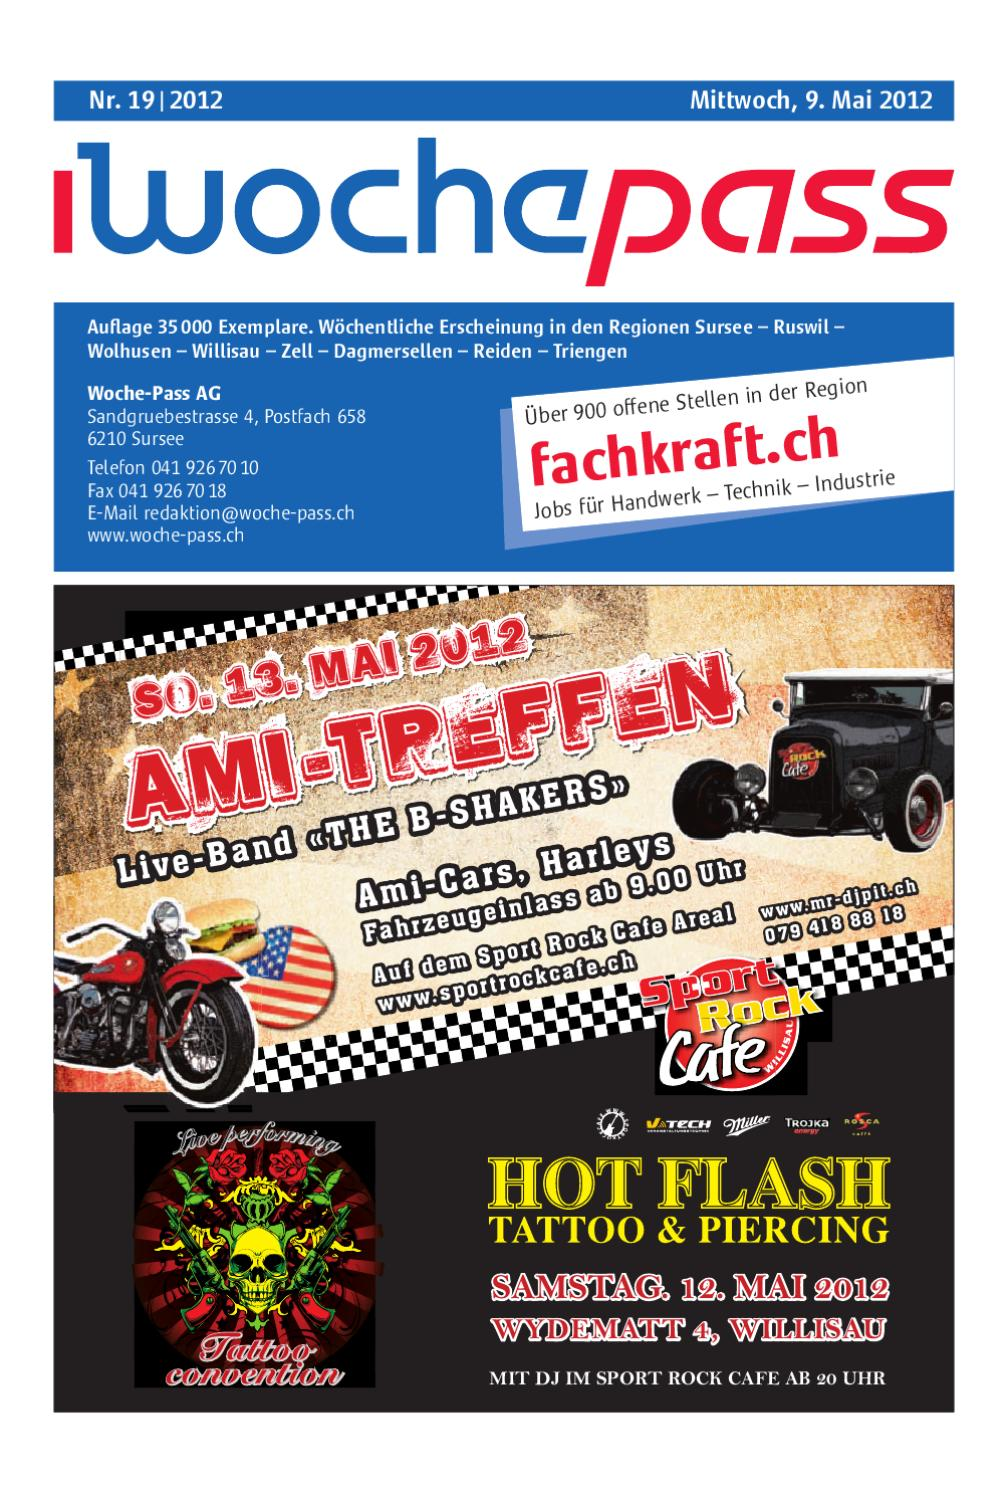 Woche Pass | KW19 | 9. Mai 2012 By Woche Pass AG   Issuu